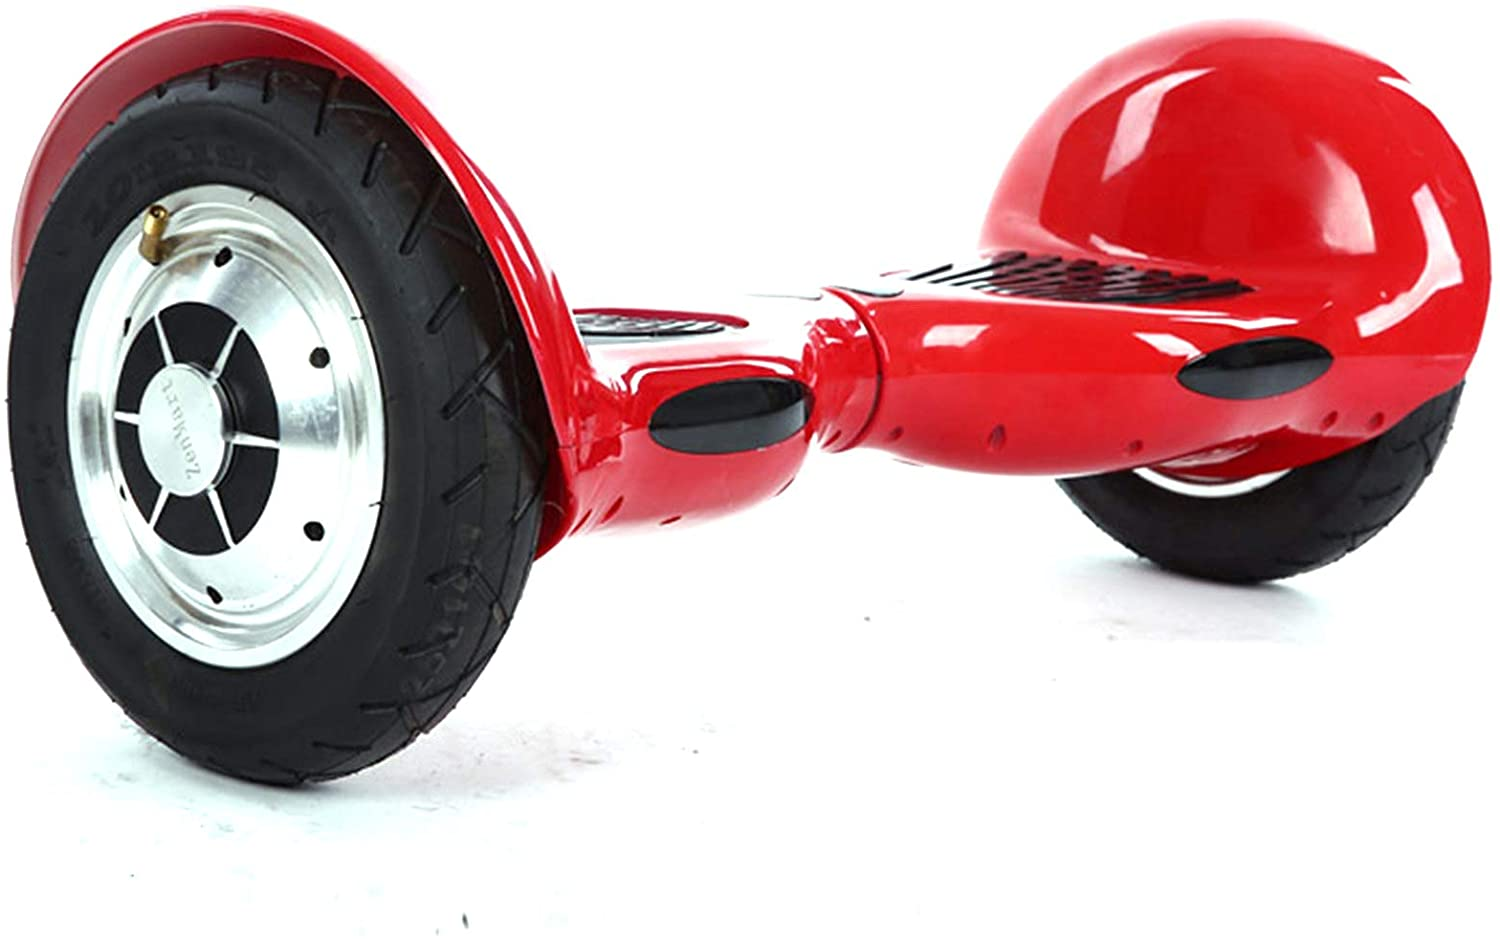 SXFYMWY Electric Hoverboard Balance Scooter 10 Inch